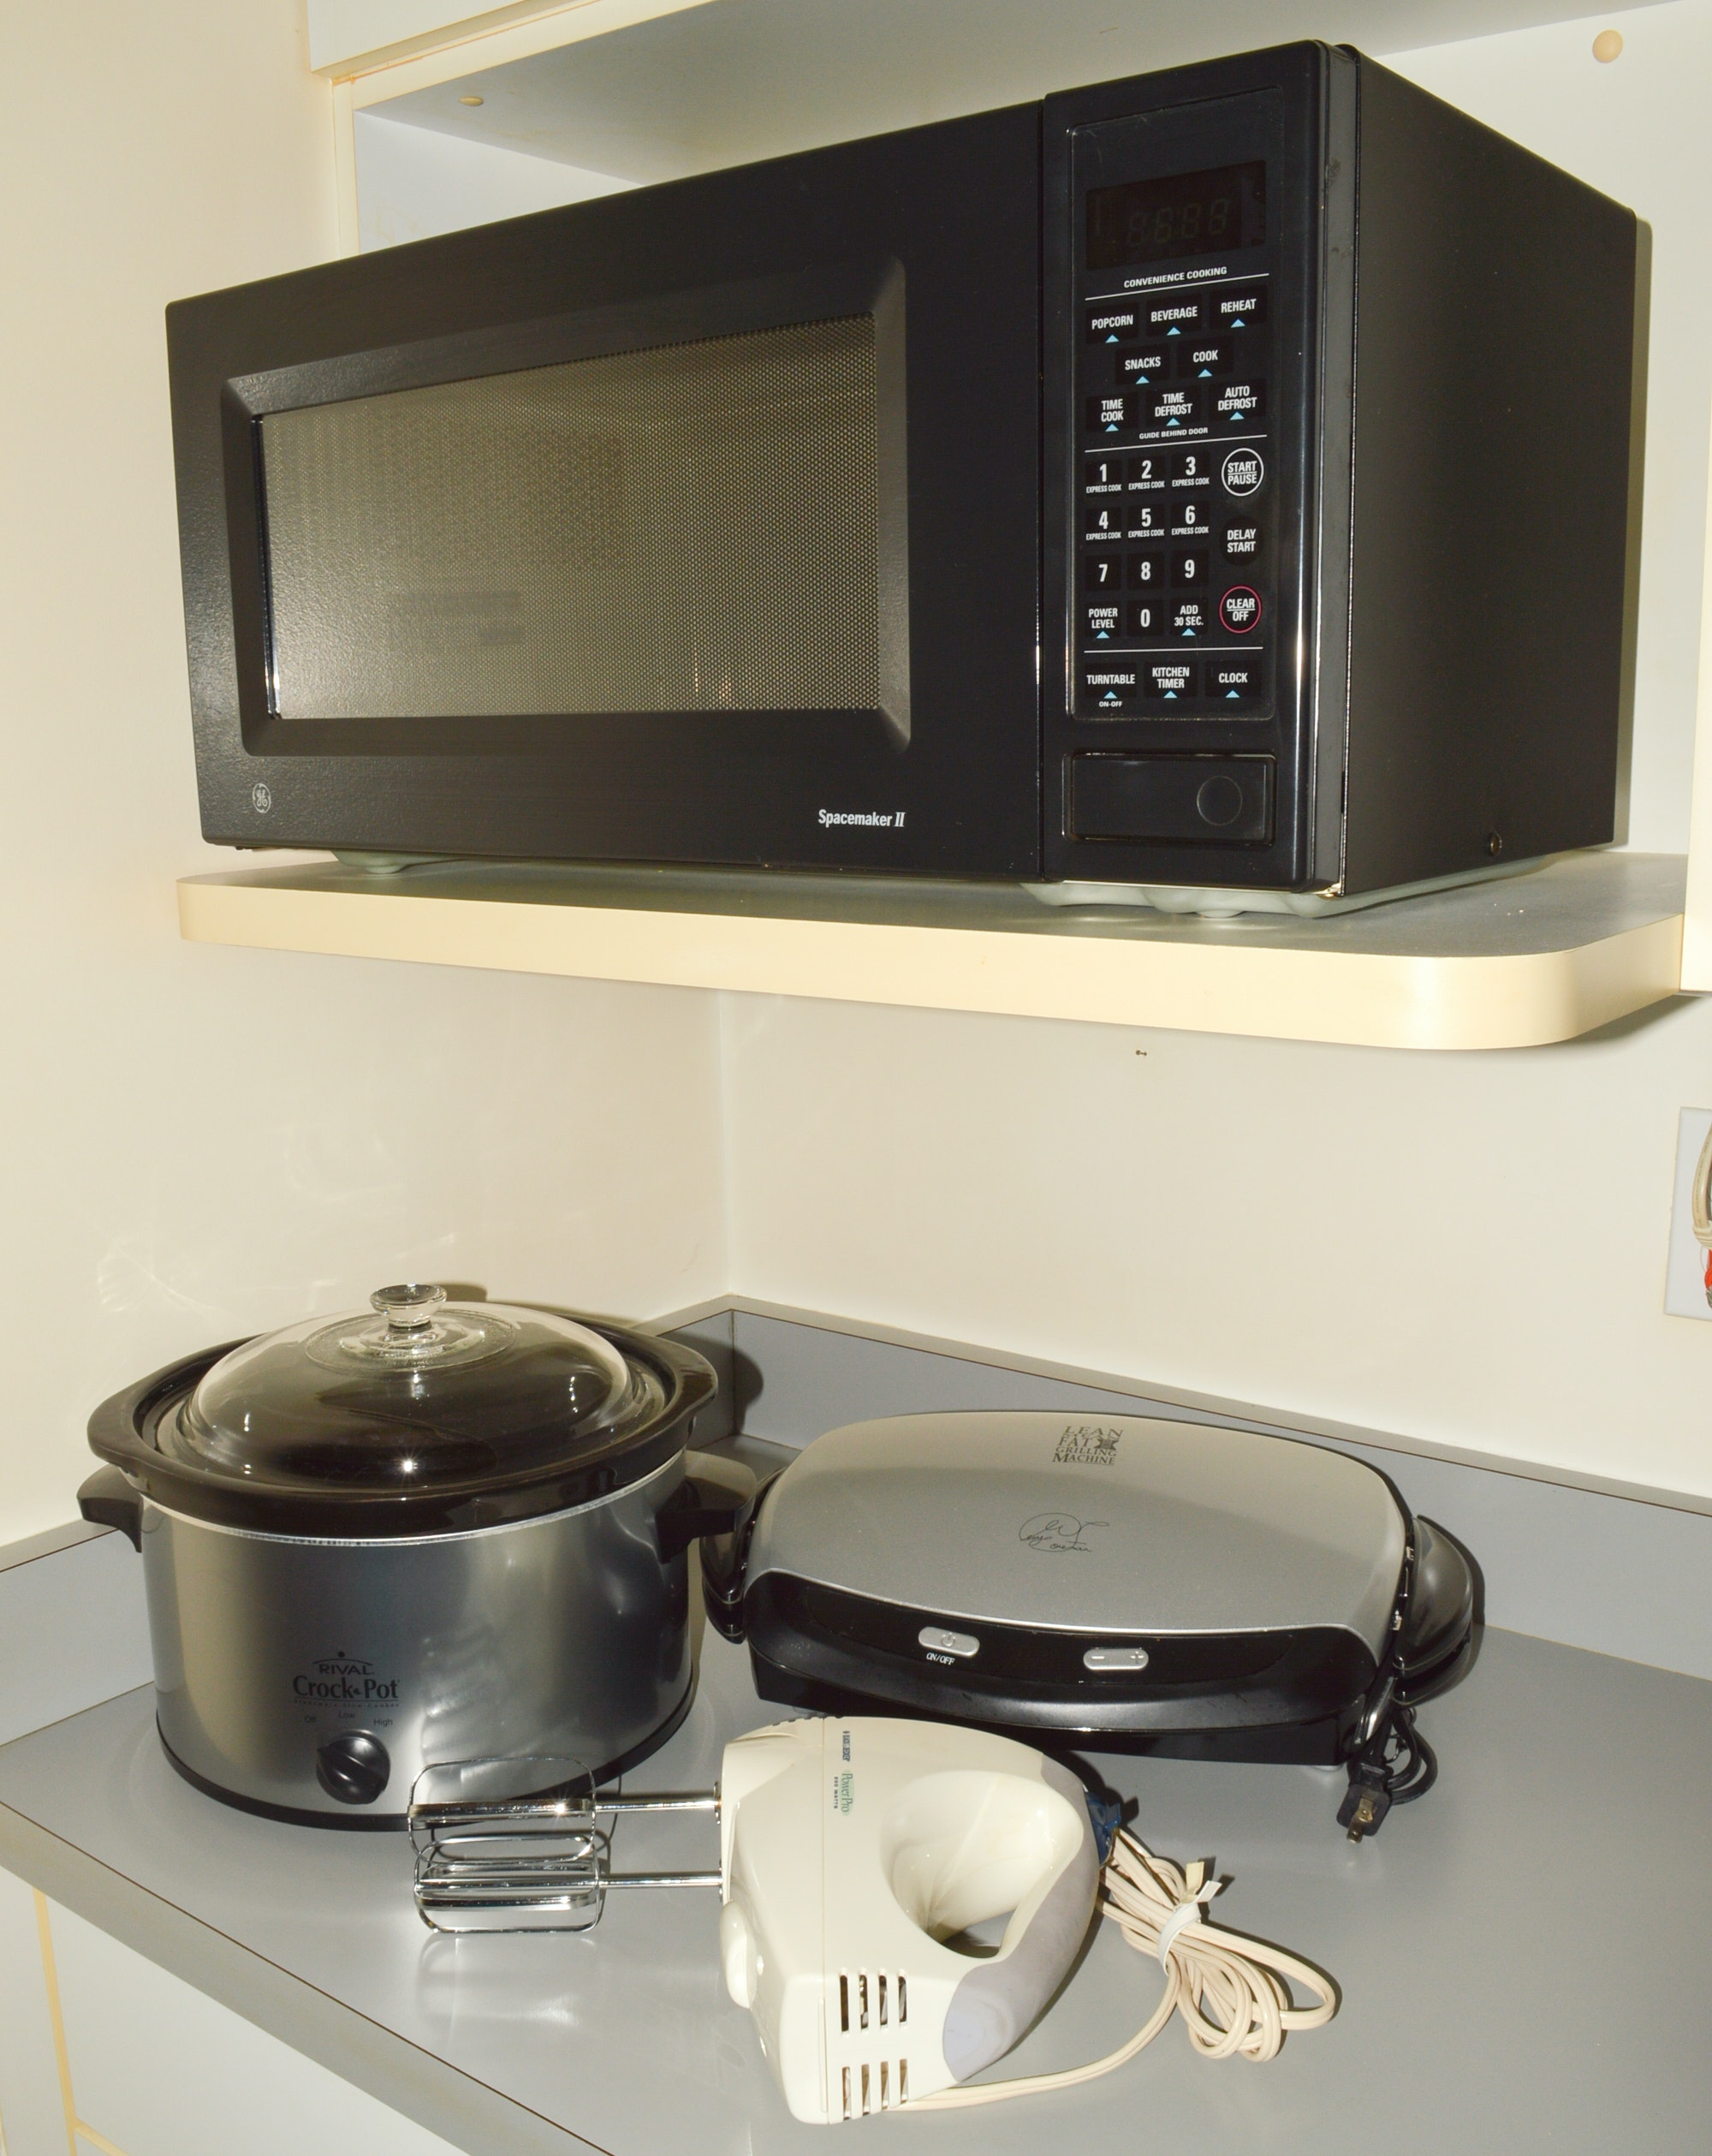 GE Spacemaker II Microwave and Small Kitchen Appliances